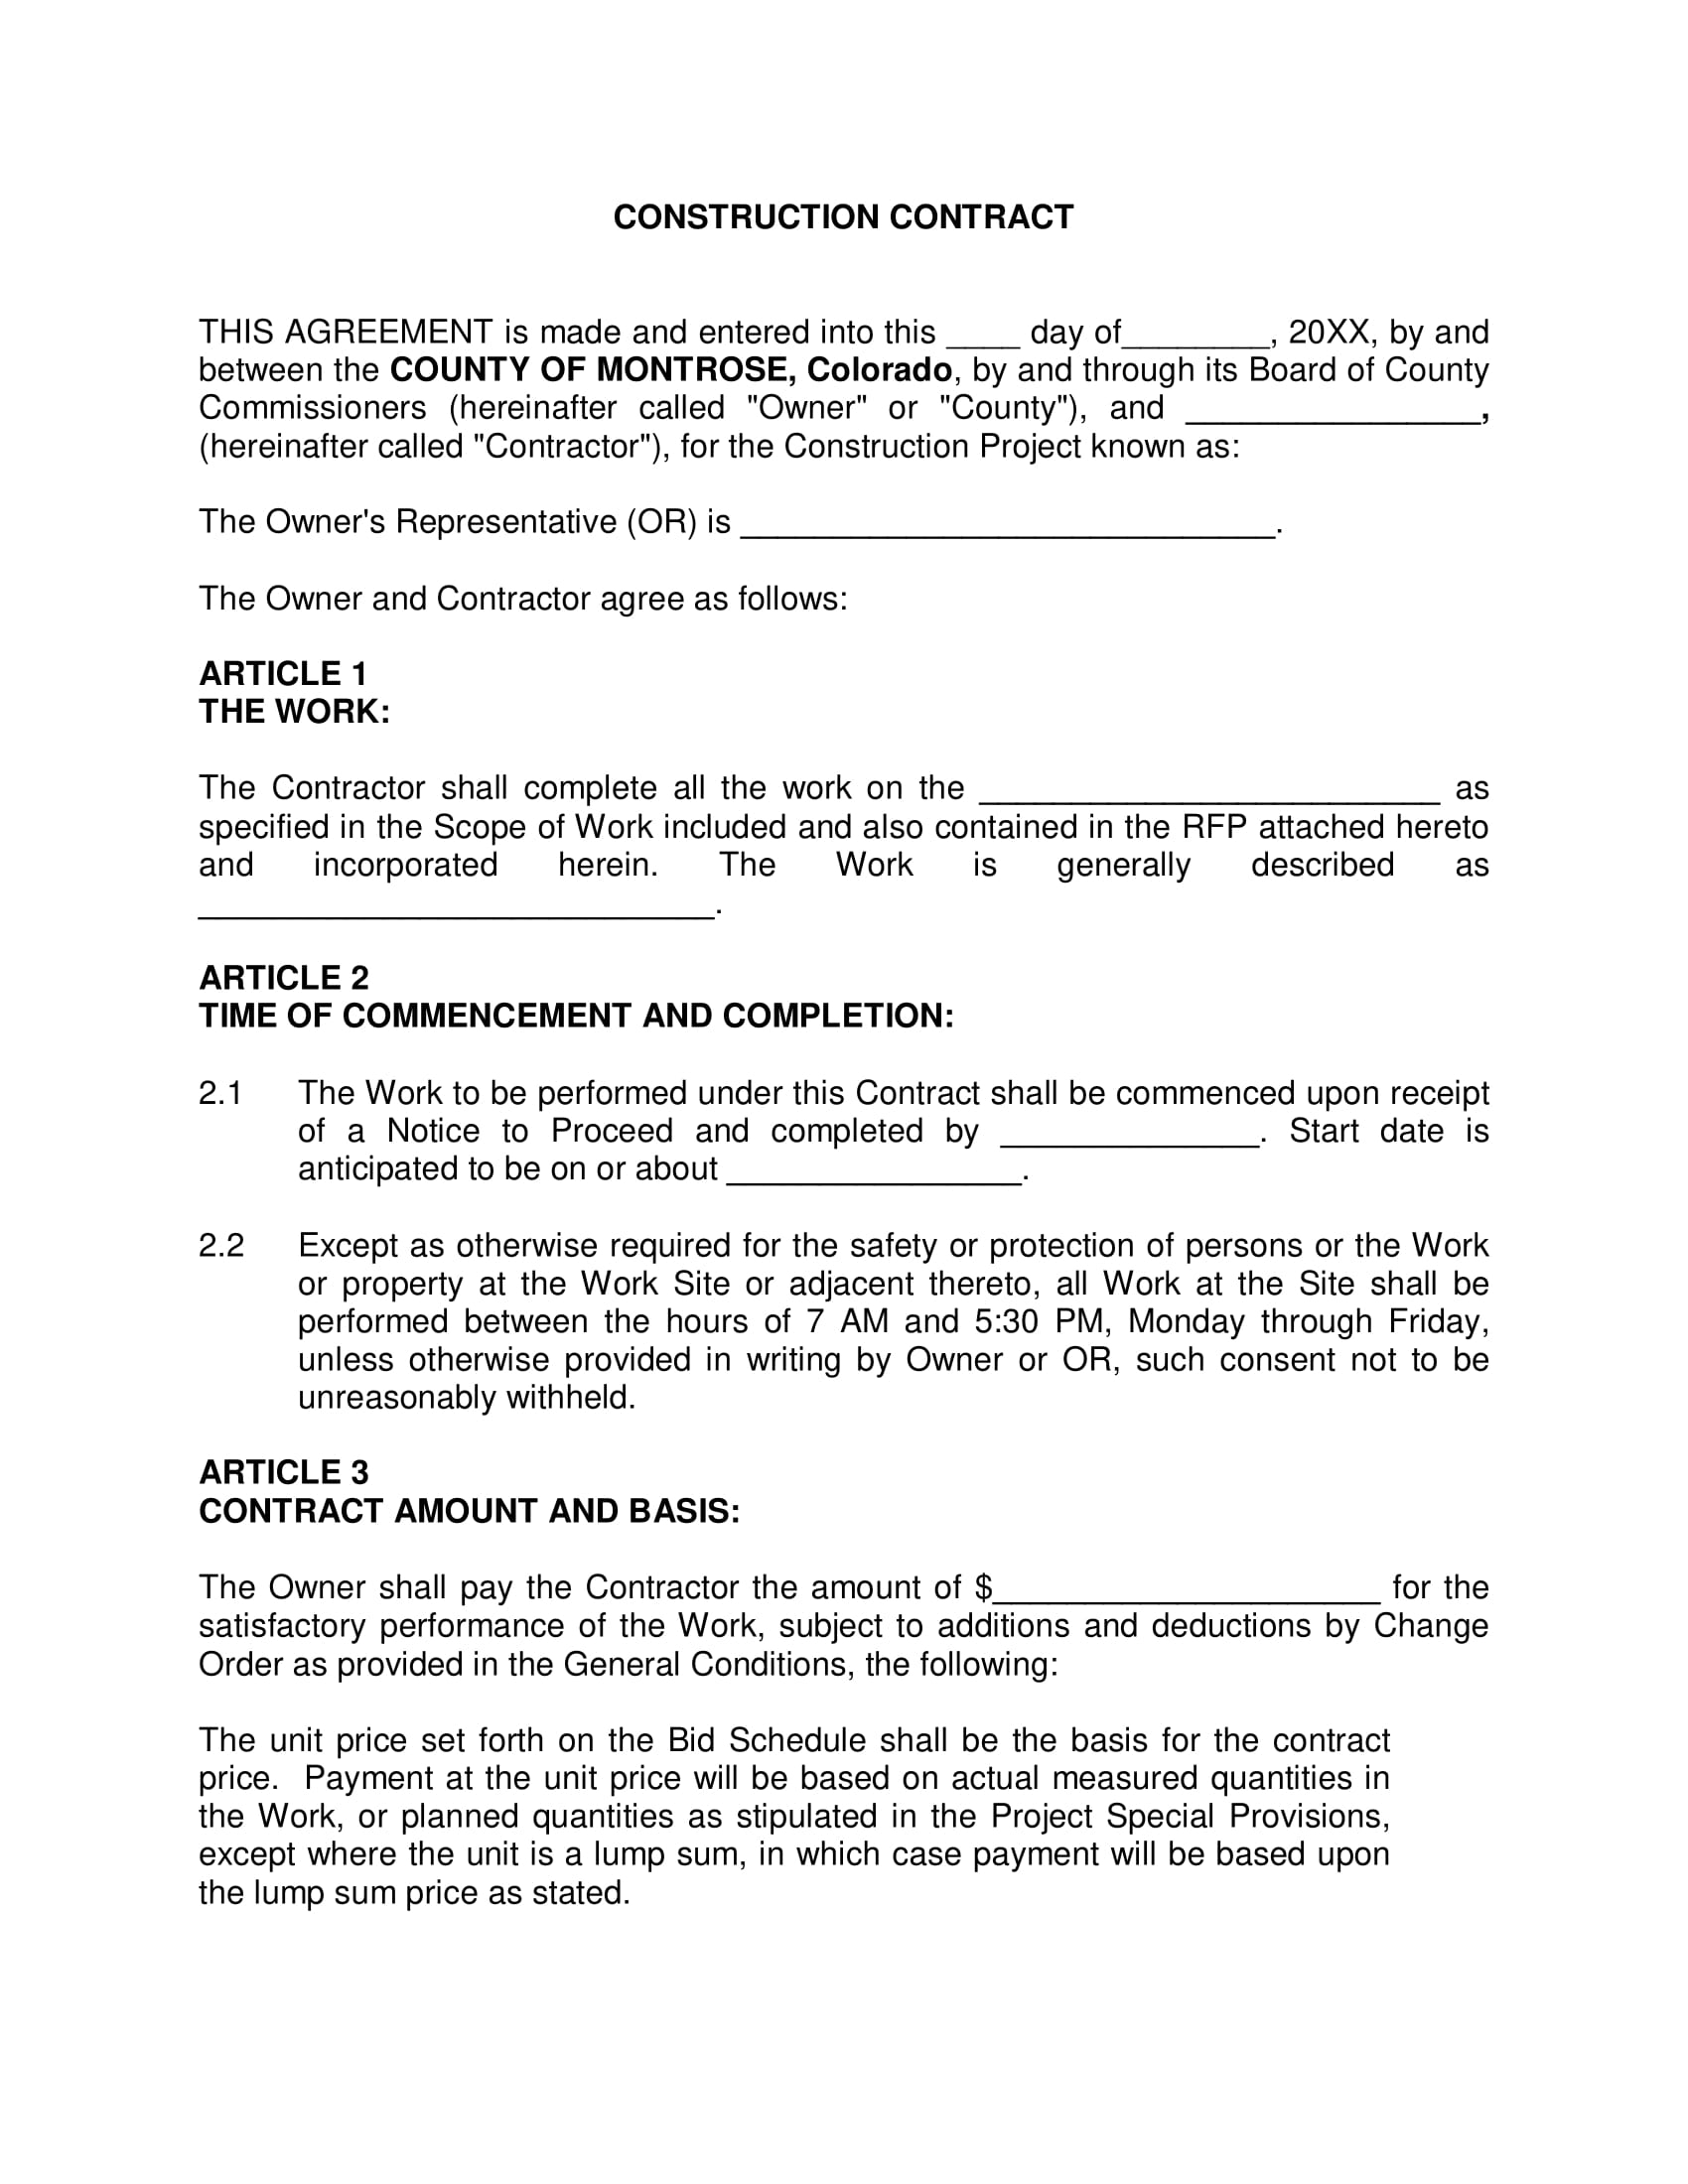 construction contract with electrical agreements template example 01